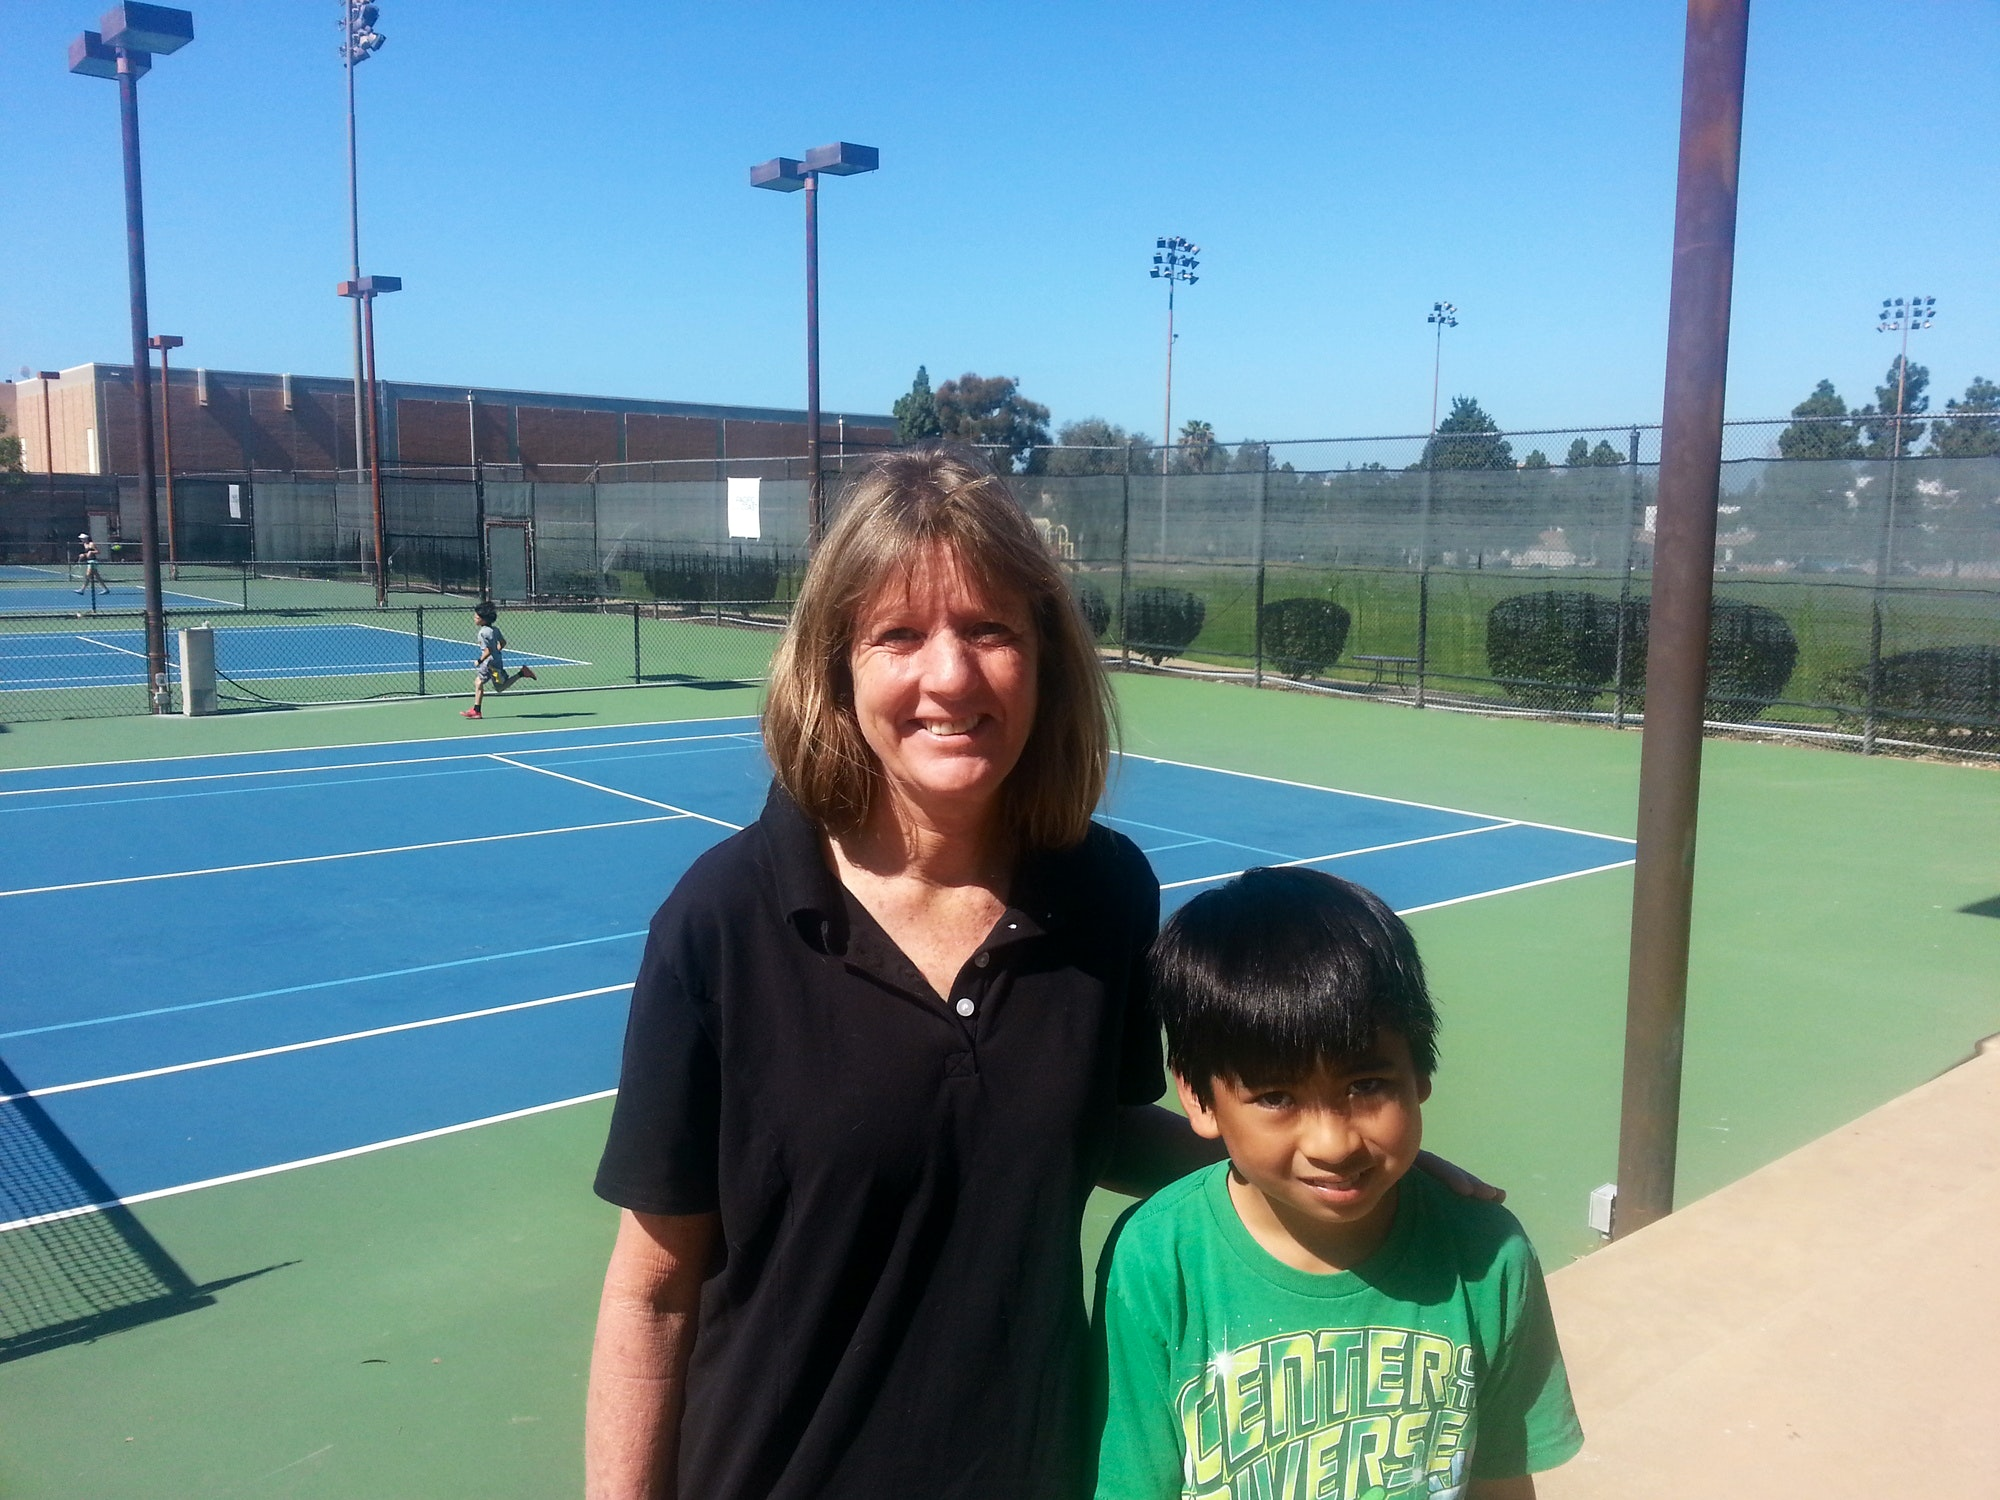 Jackie S. teaches tennis lessons in San Marcos , CA